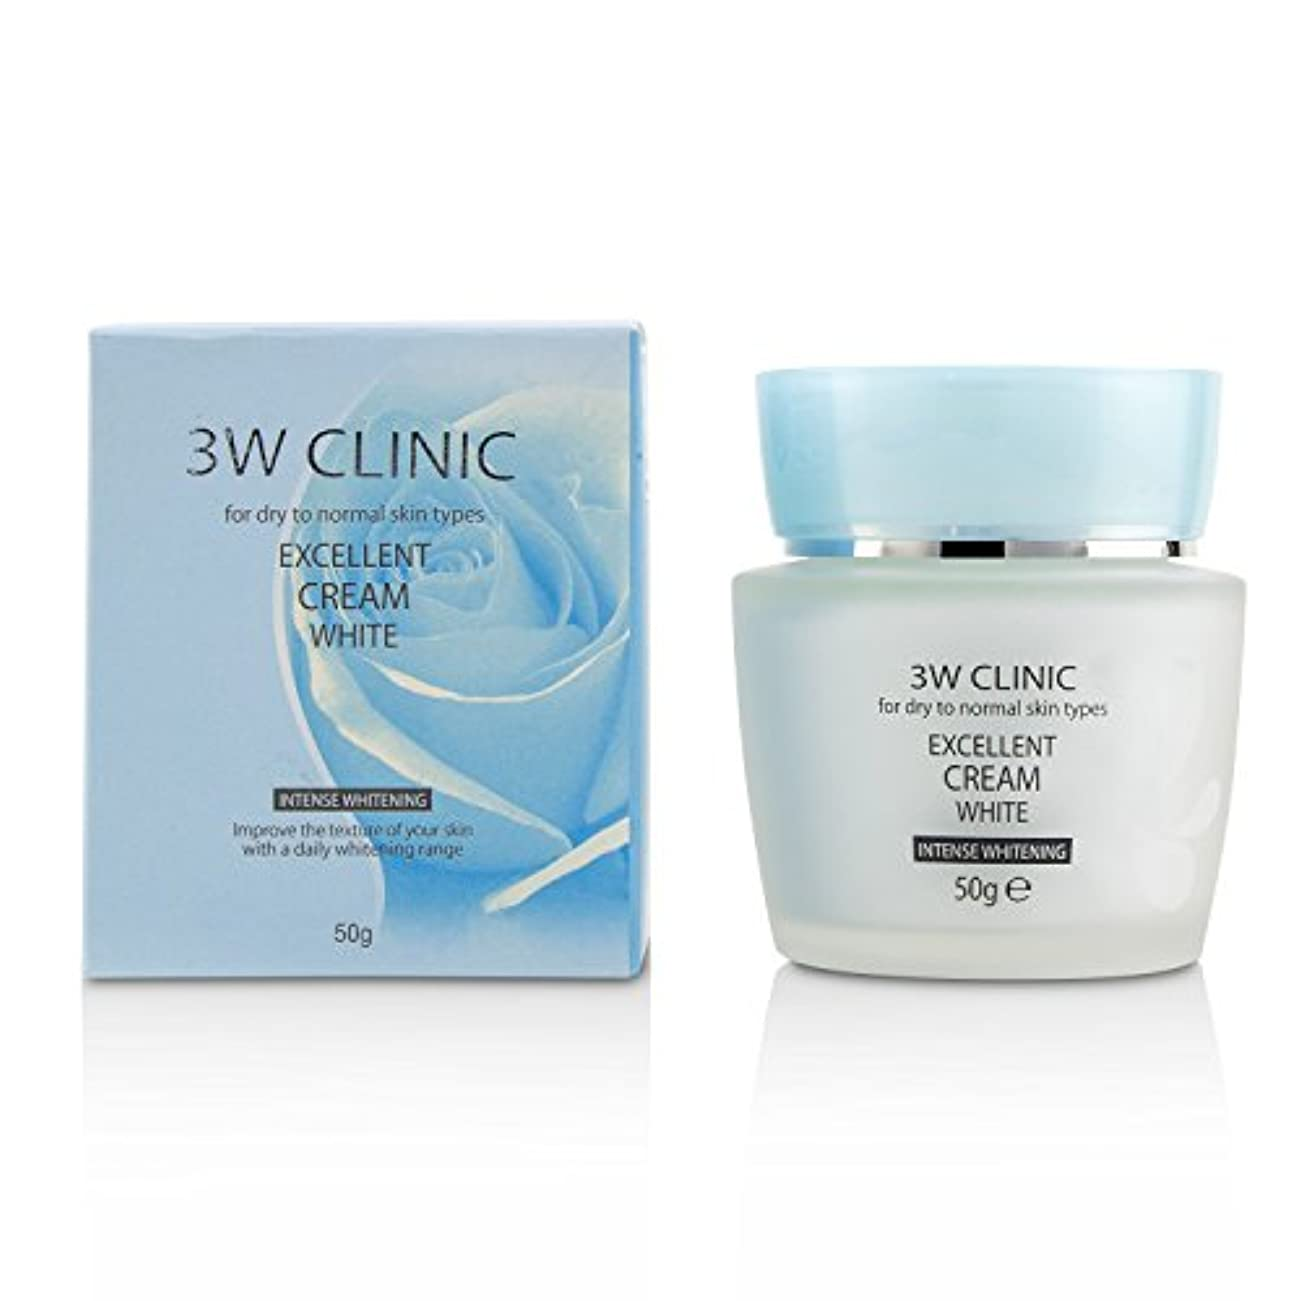 タイト慈善裸3Wクリニック Excellent White Cream (Intensive Whitening) - For Dry to Normal Skin Types 50g/1.7oz並行輸入品